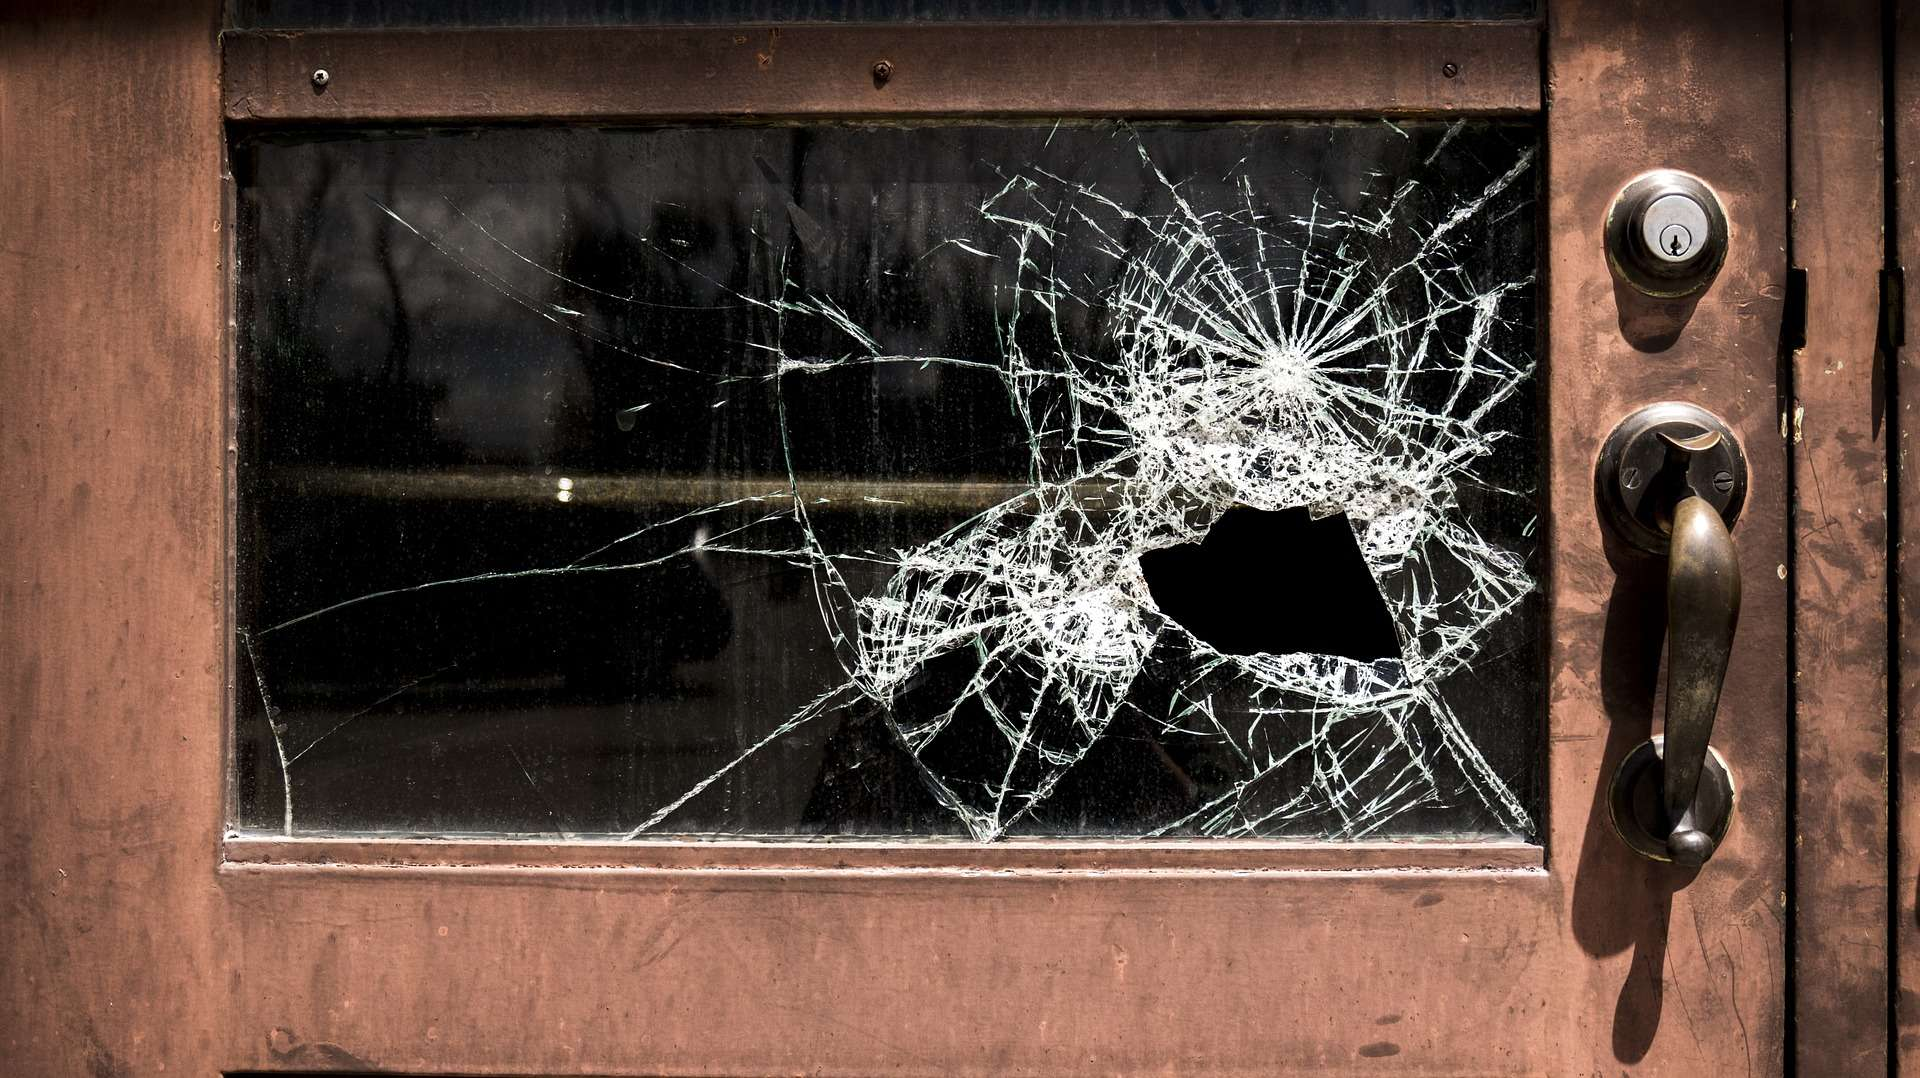 Broken window in a school door